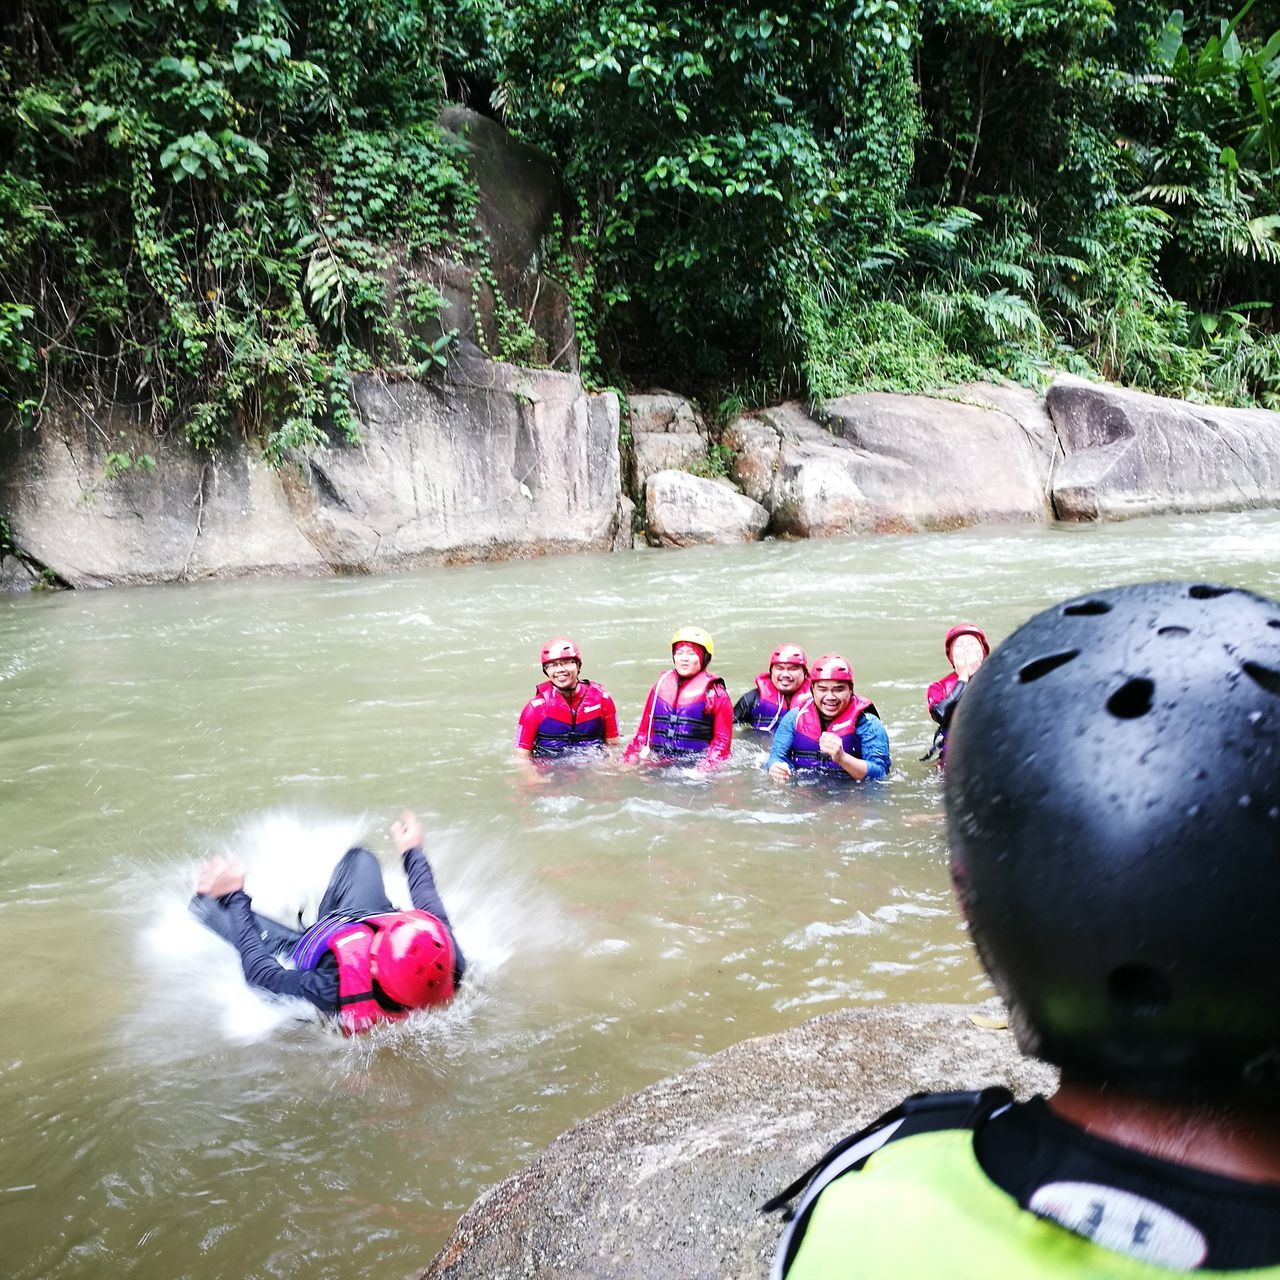 real people, water, leisure activity, adventure, lifestyles, river, men, rafting, day, medium group of people, togetherness, nature, vacations, outdoors, tree, women, sport, inflatable raft, beauty in nature, adult, people